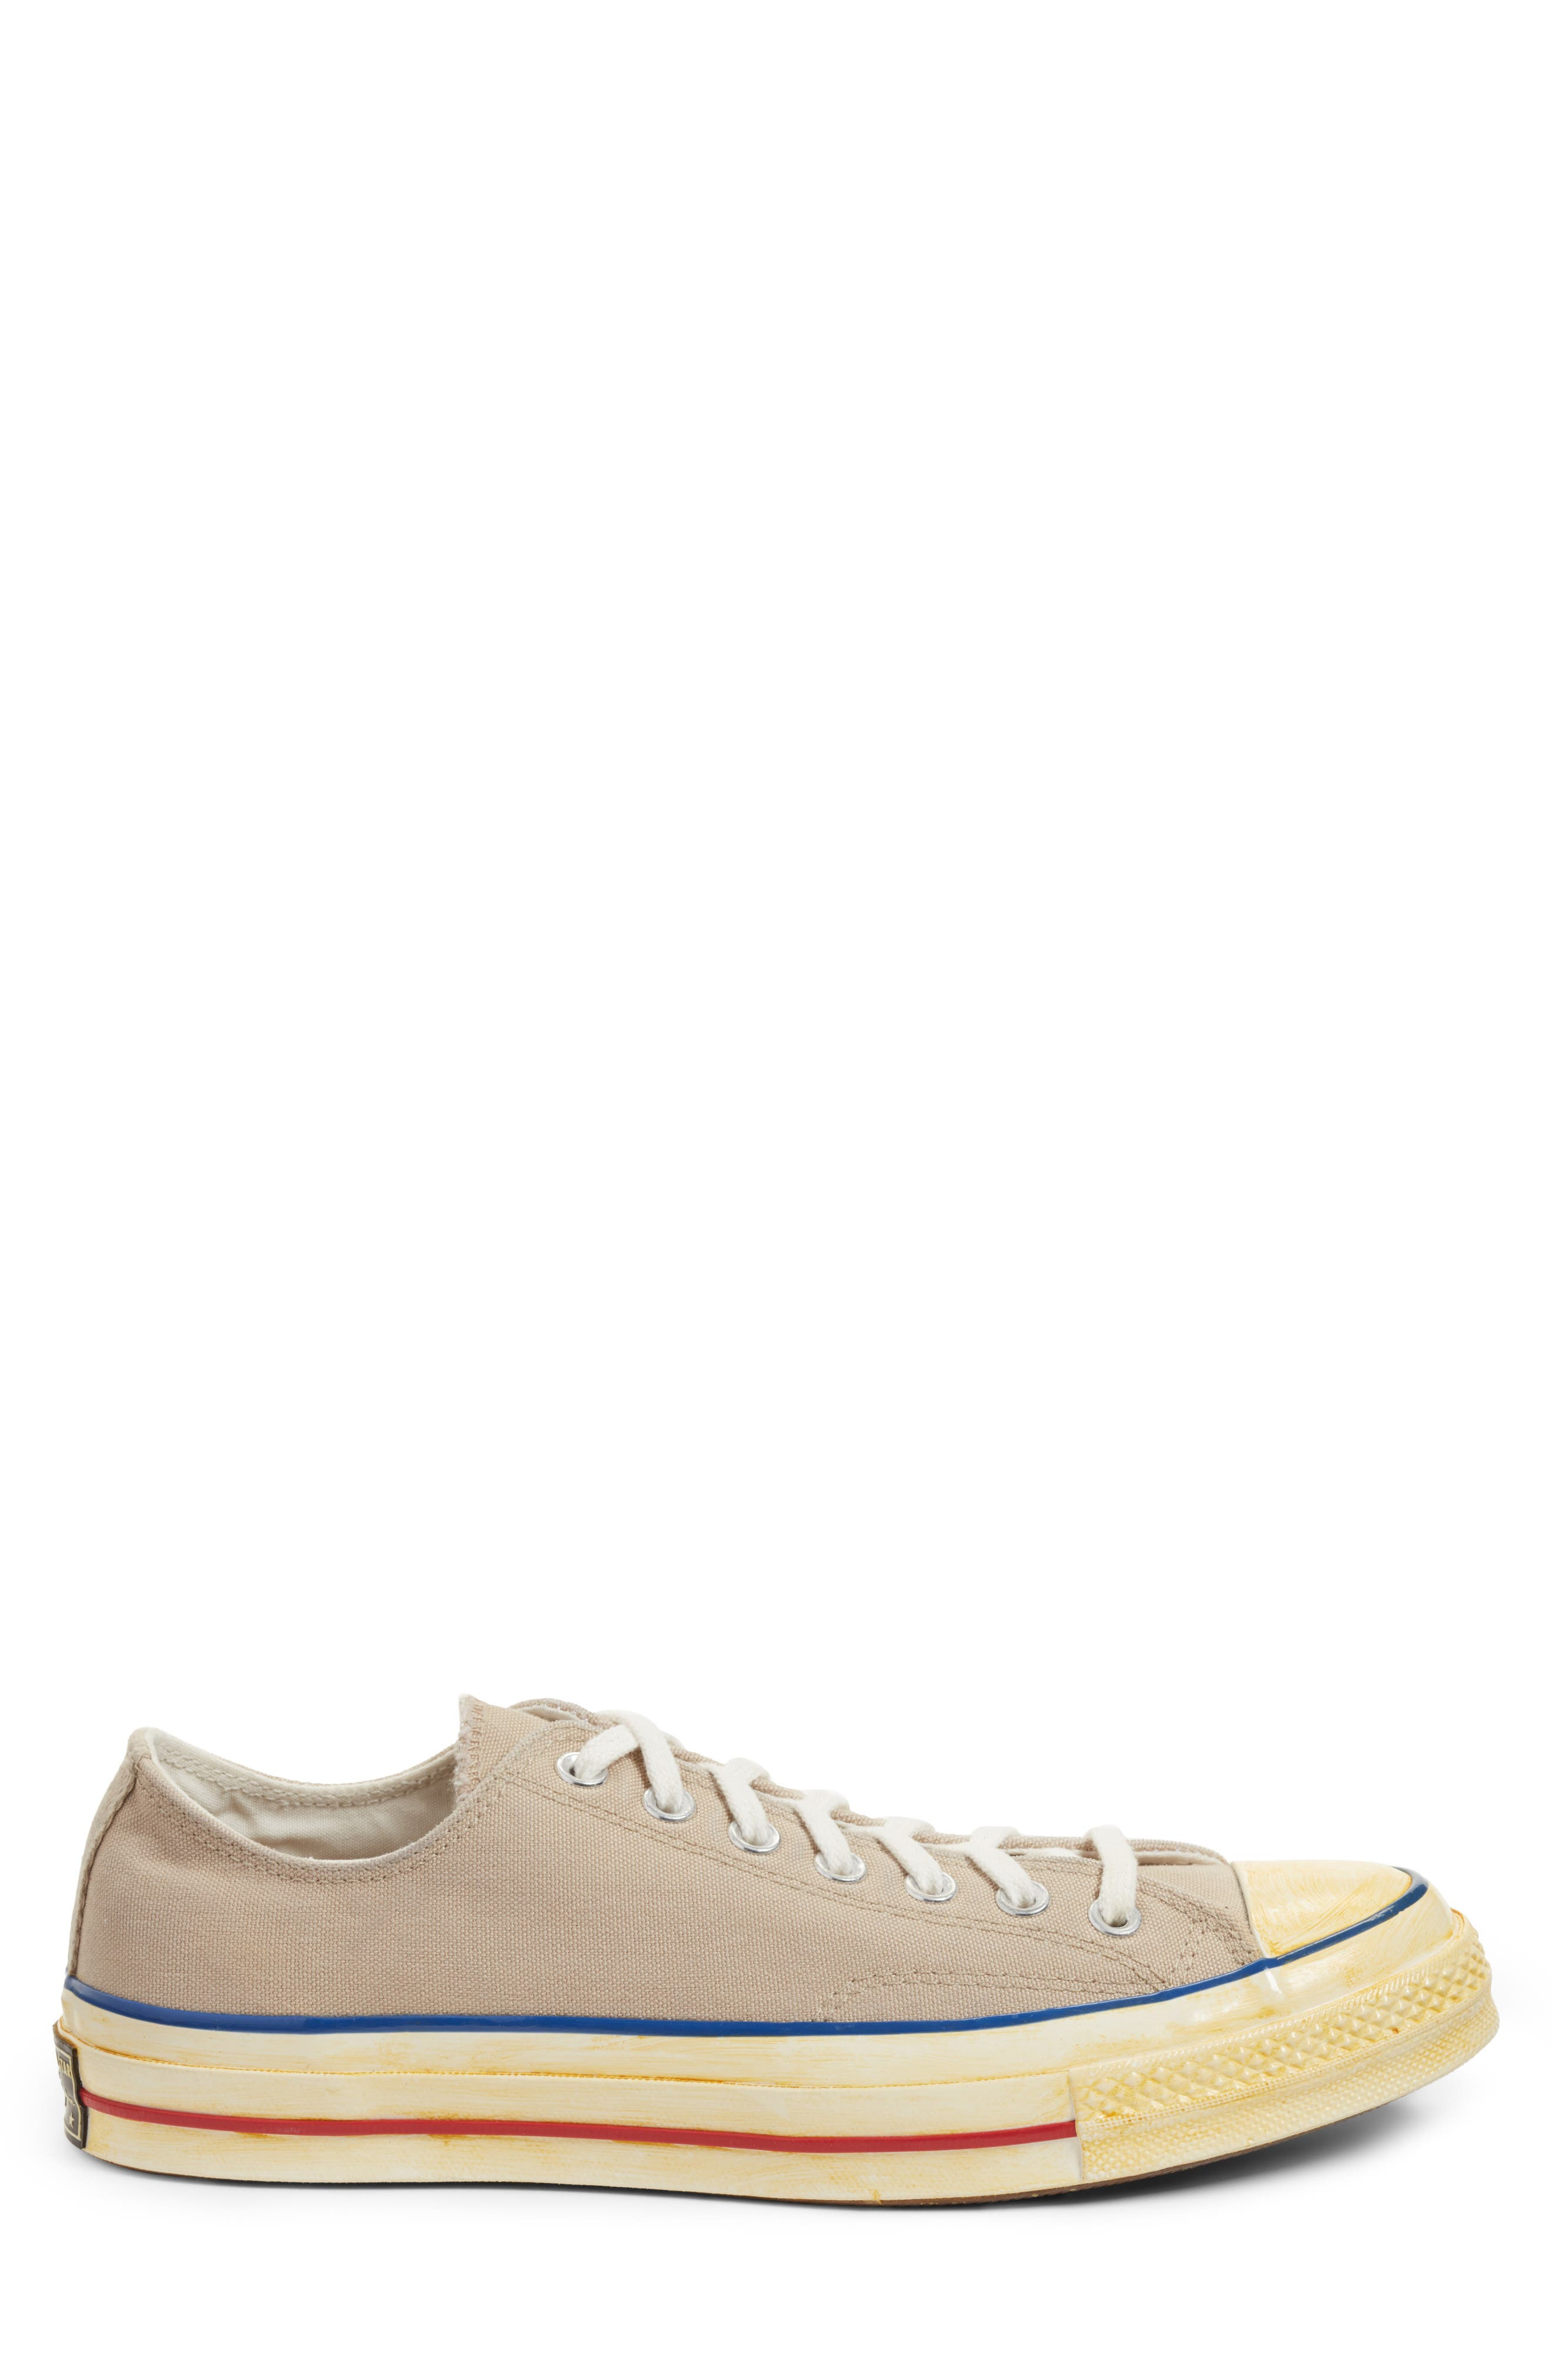 Chuck Taylor<sup>®</sup> All Star<sup>®</sup> 70 Low Top Sneaker,                             Alternate thumbnail 3, color,                             270